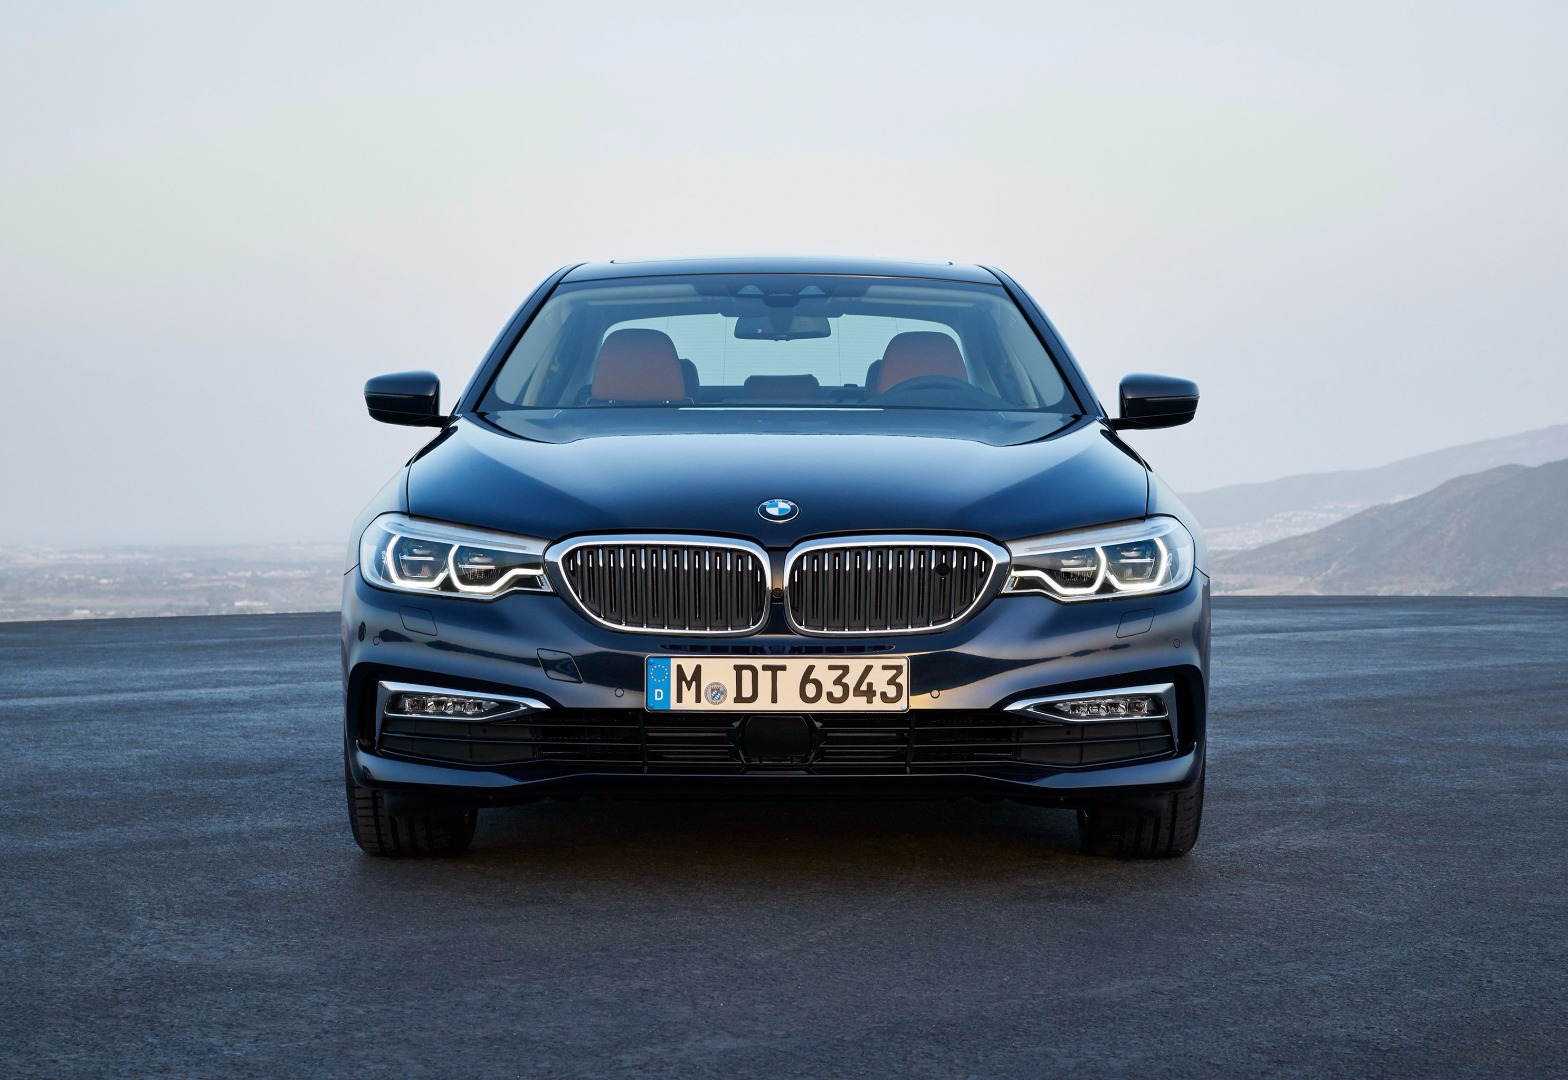 news all new bmw 5 series brings wireless apple carplay. Black Bedroom Furniture Sets. Home Design Ideas